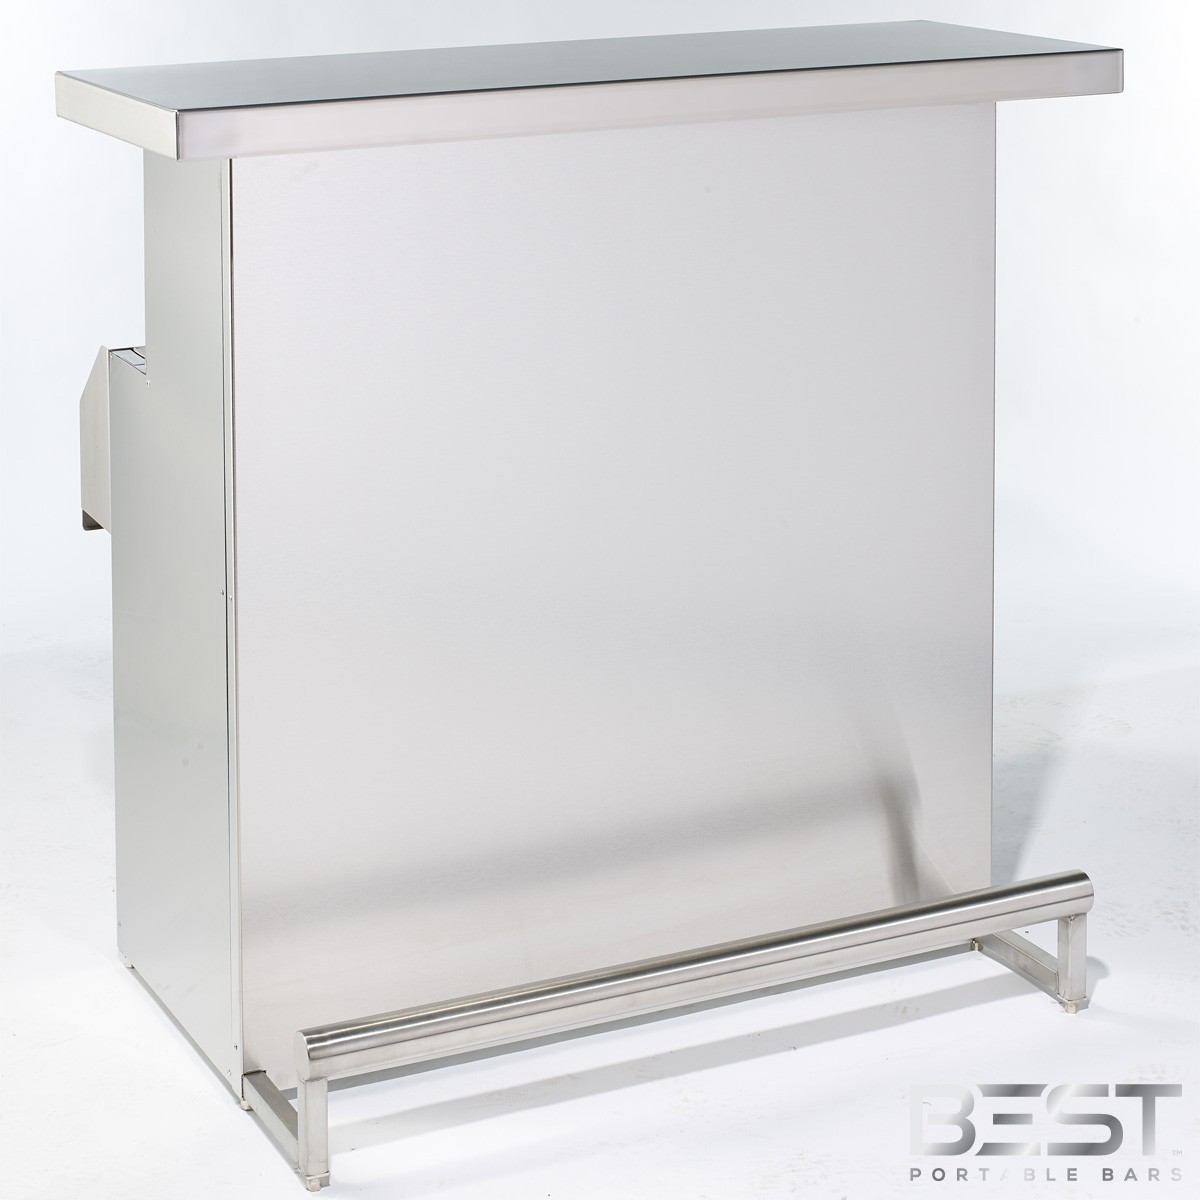 DELUX bar is the best portable bar with elegant 304 stainless steel finish